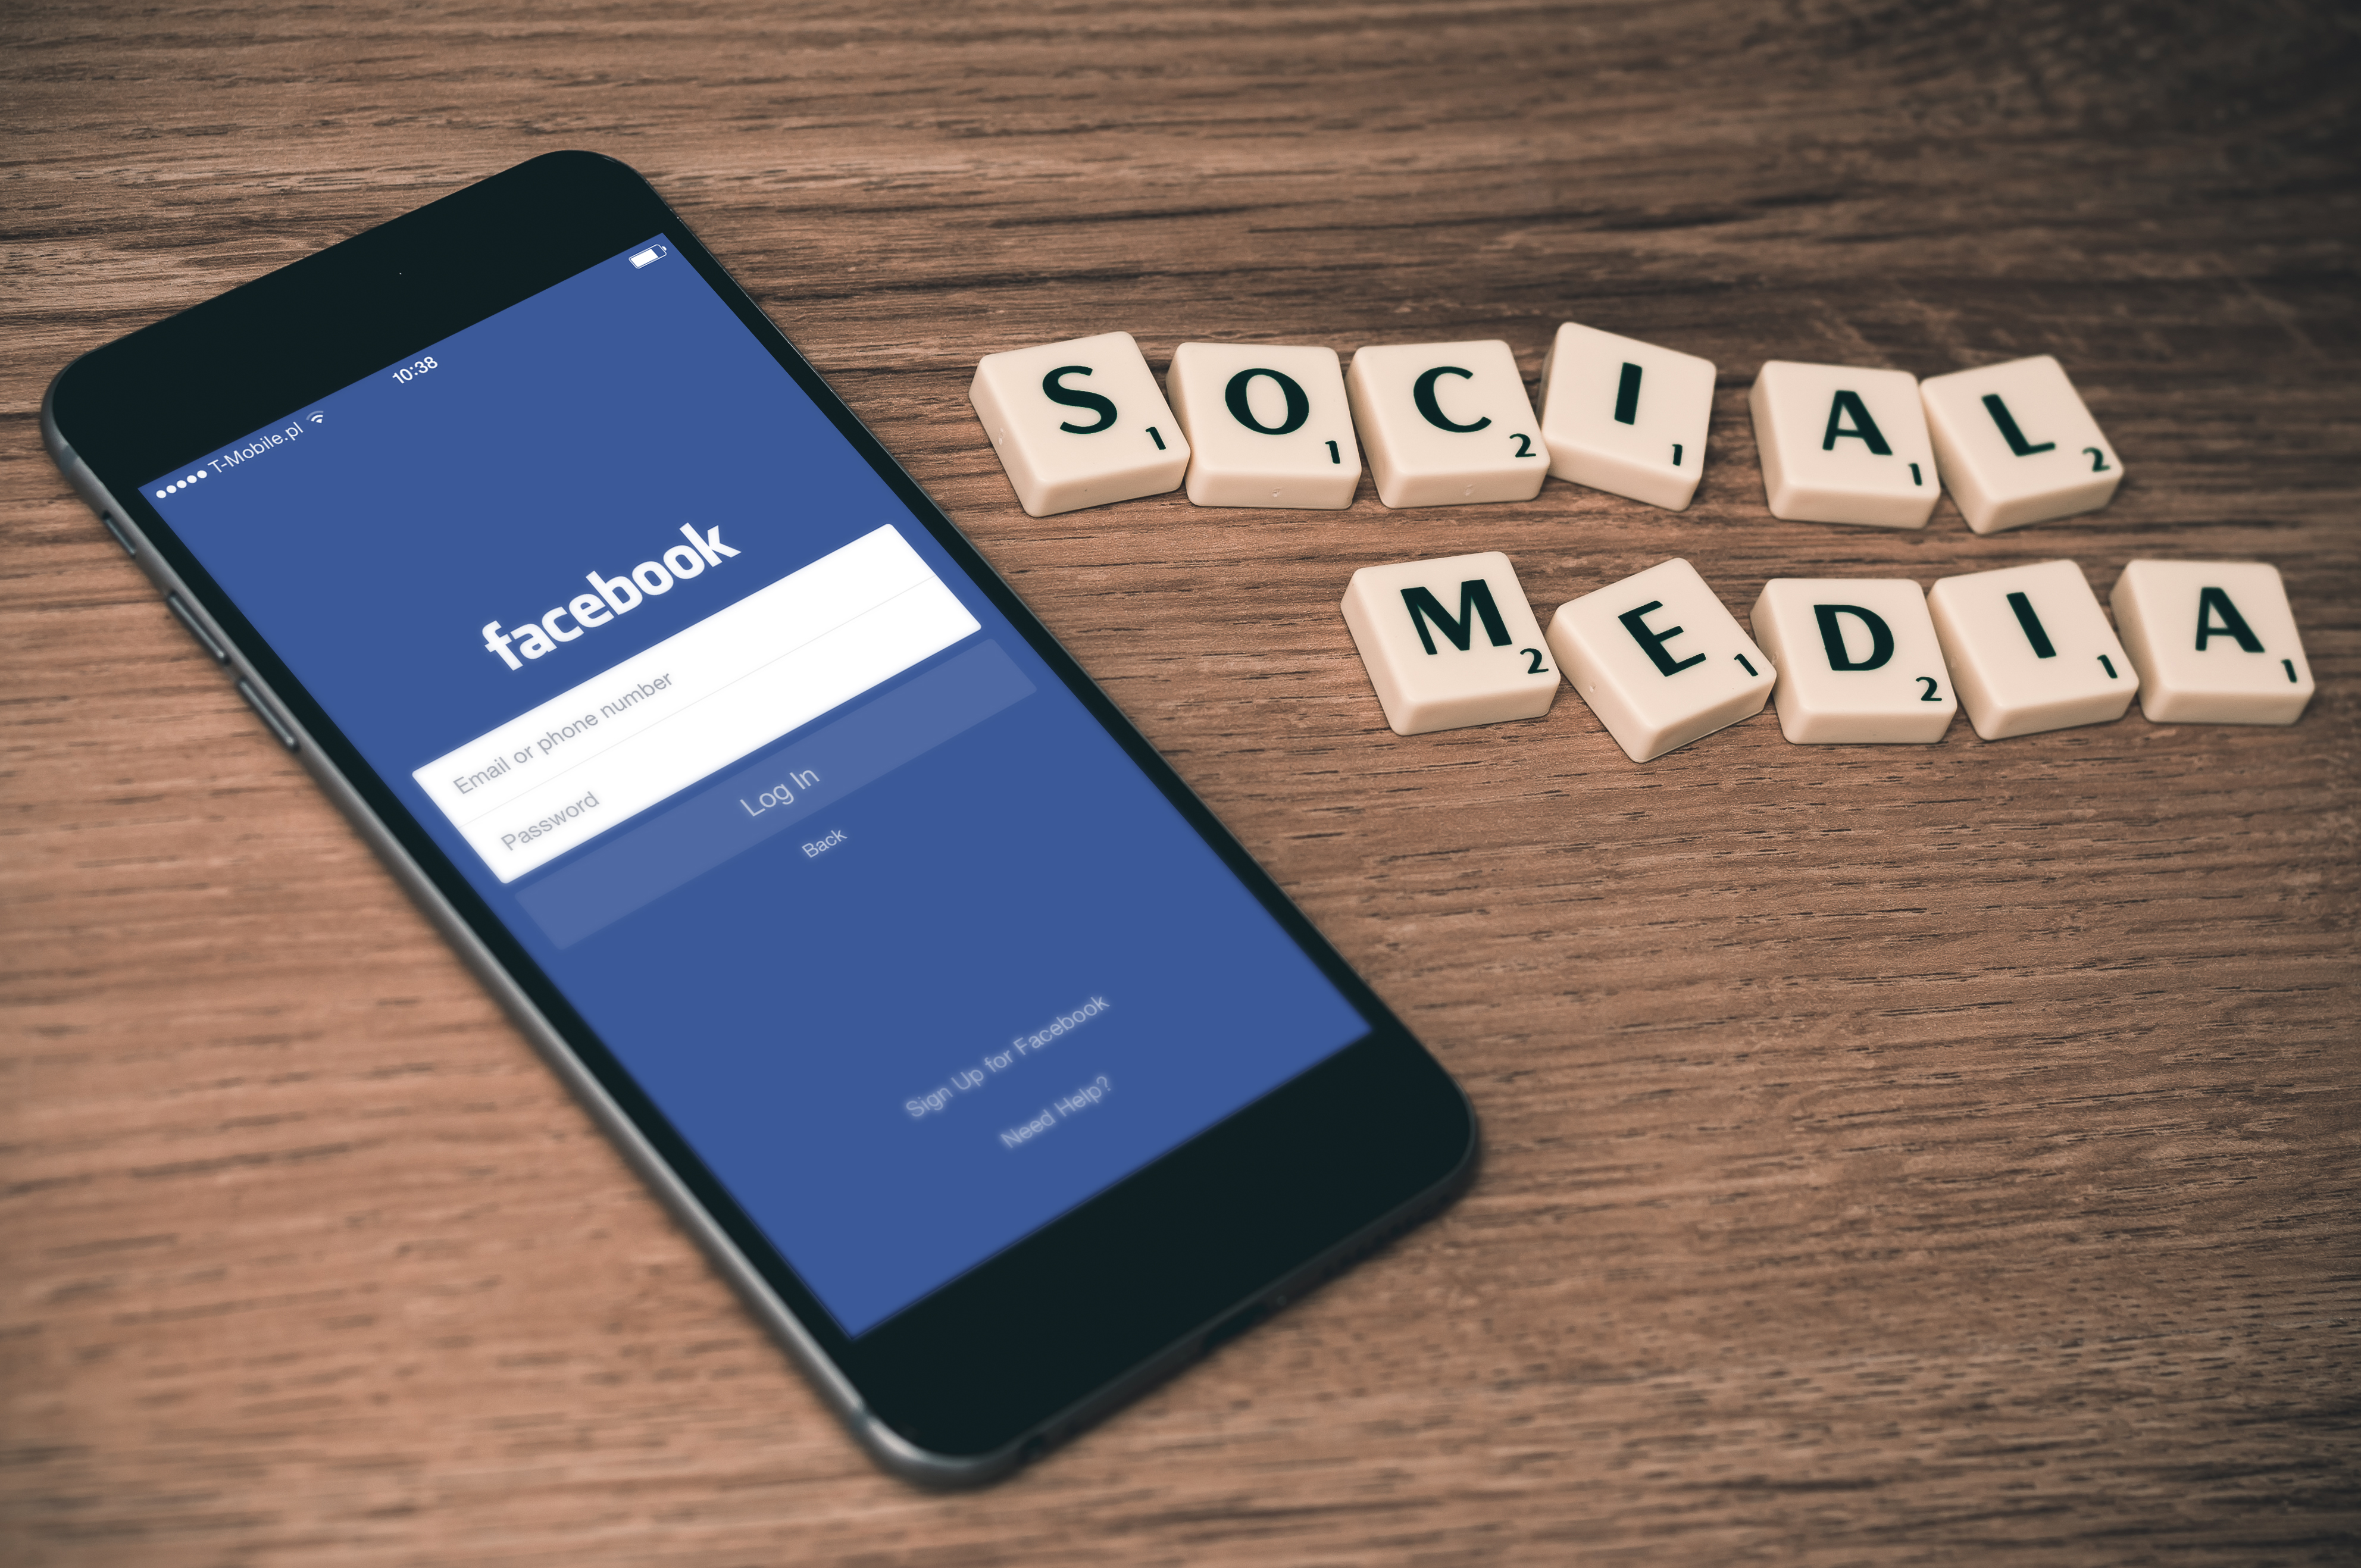 Using social networks for Jewish education